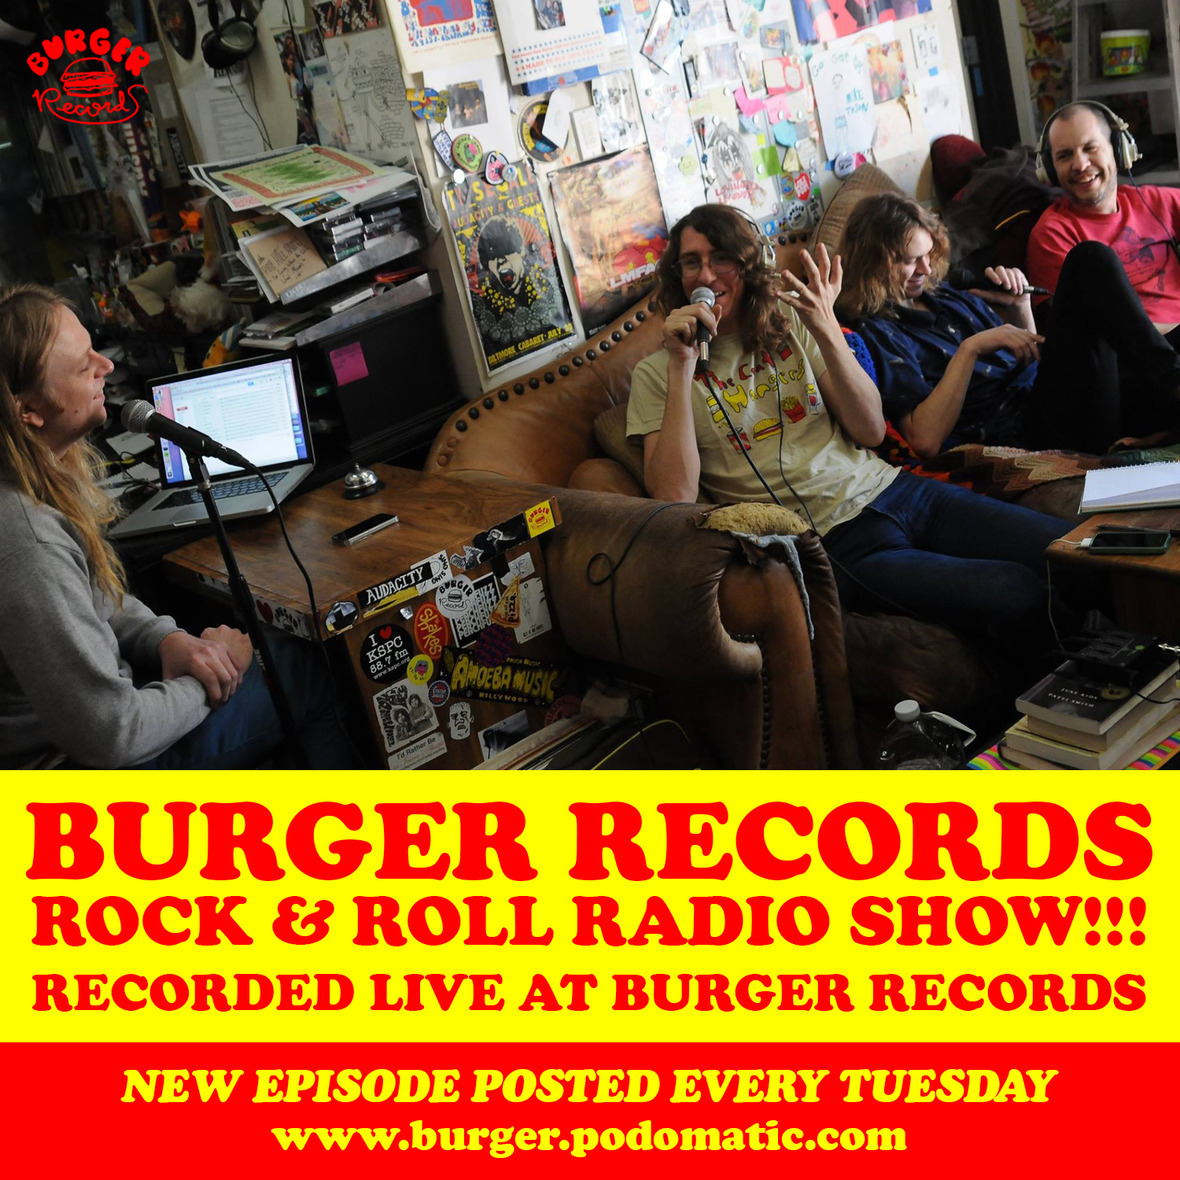 ROCK N ROLL RADIO SHOW COVER16